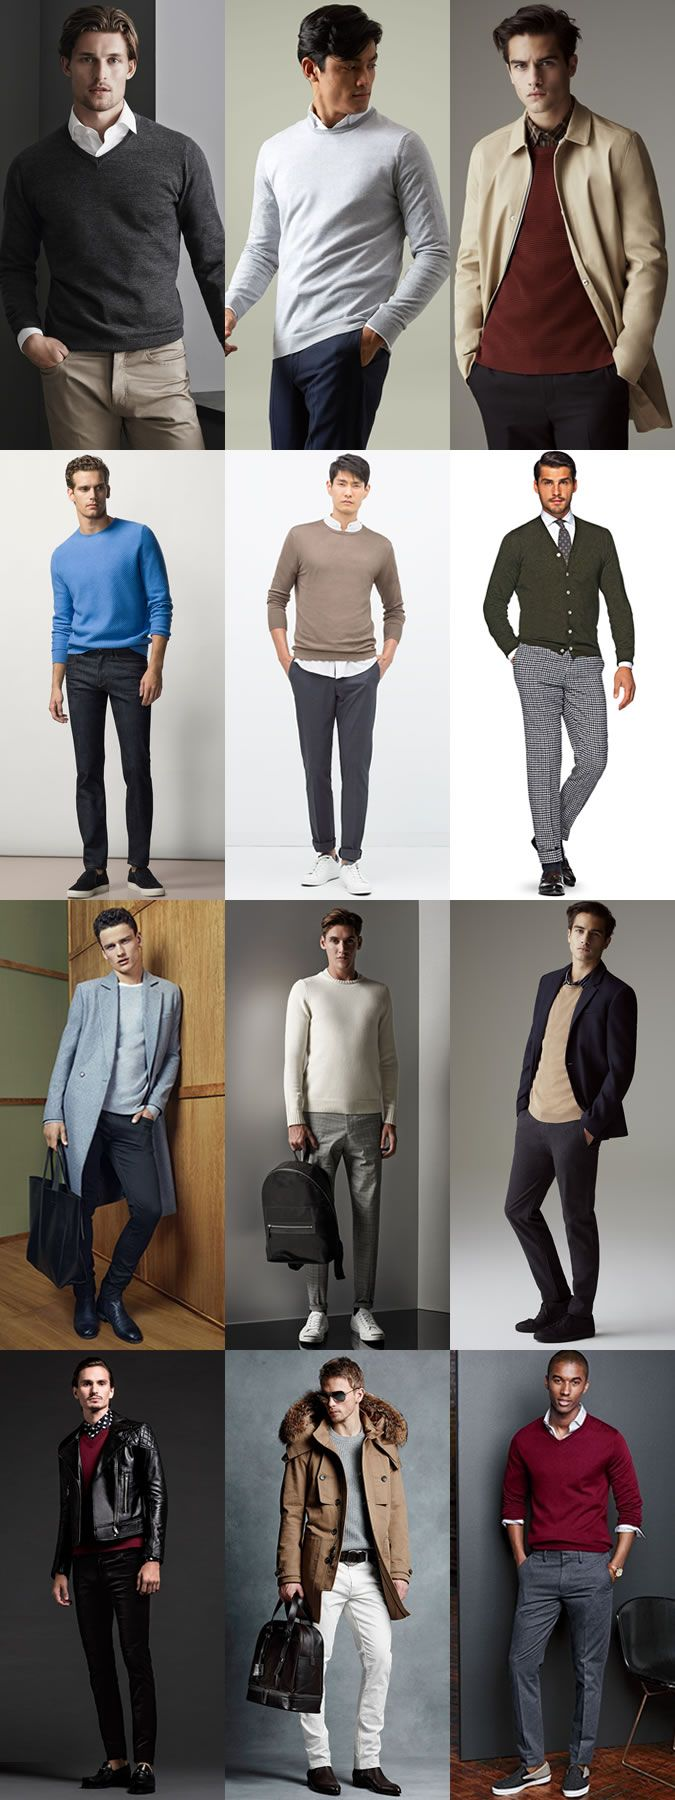 Men's Autumn Wardrobe Essentials: Lightweight Knitwear Autumn Outfit Inspiration Lookbook